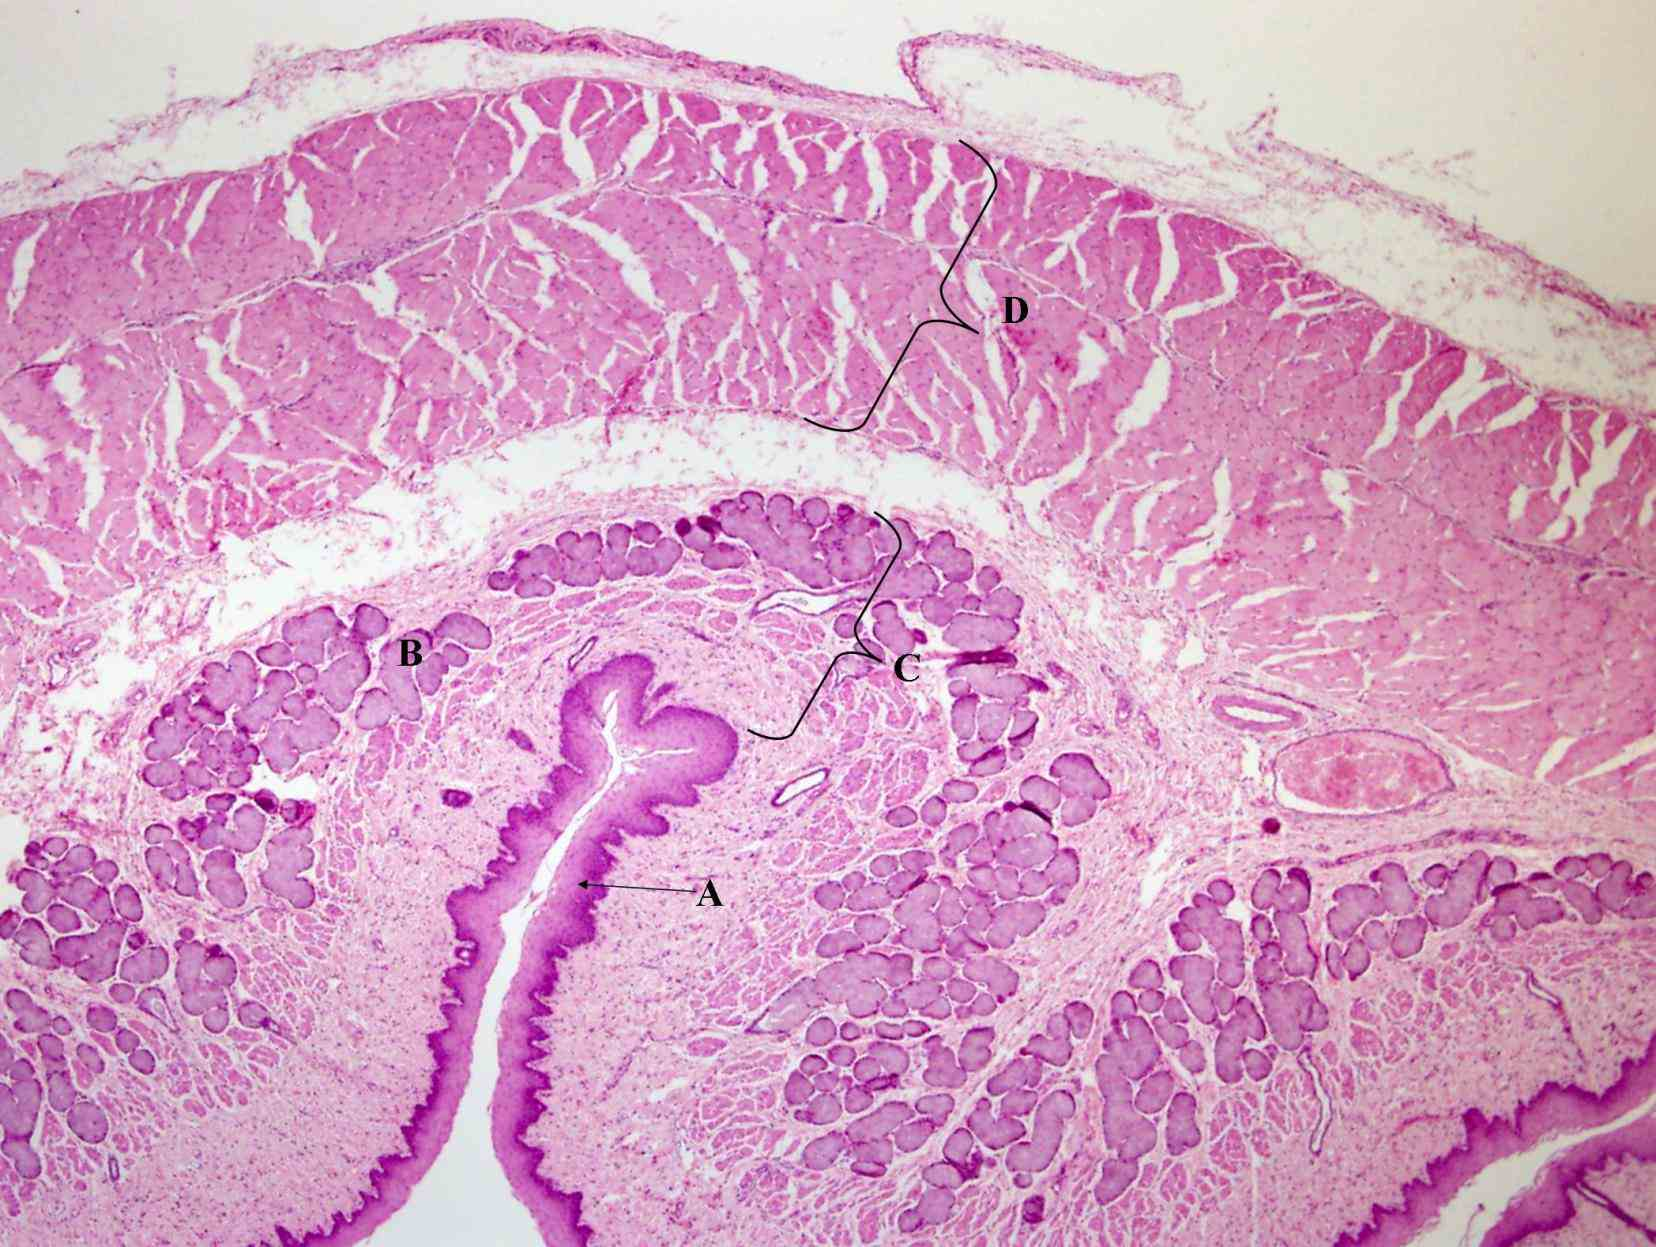 relatively rapid turnover and serves protective function against abrasive effects food in many the Epithelium Of The Esophagus esophageal